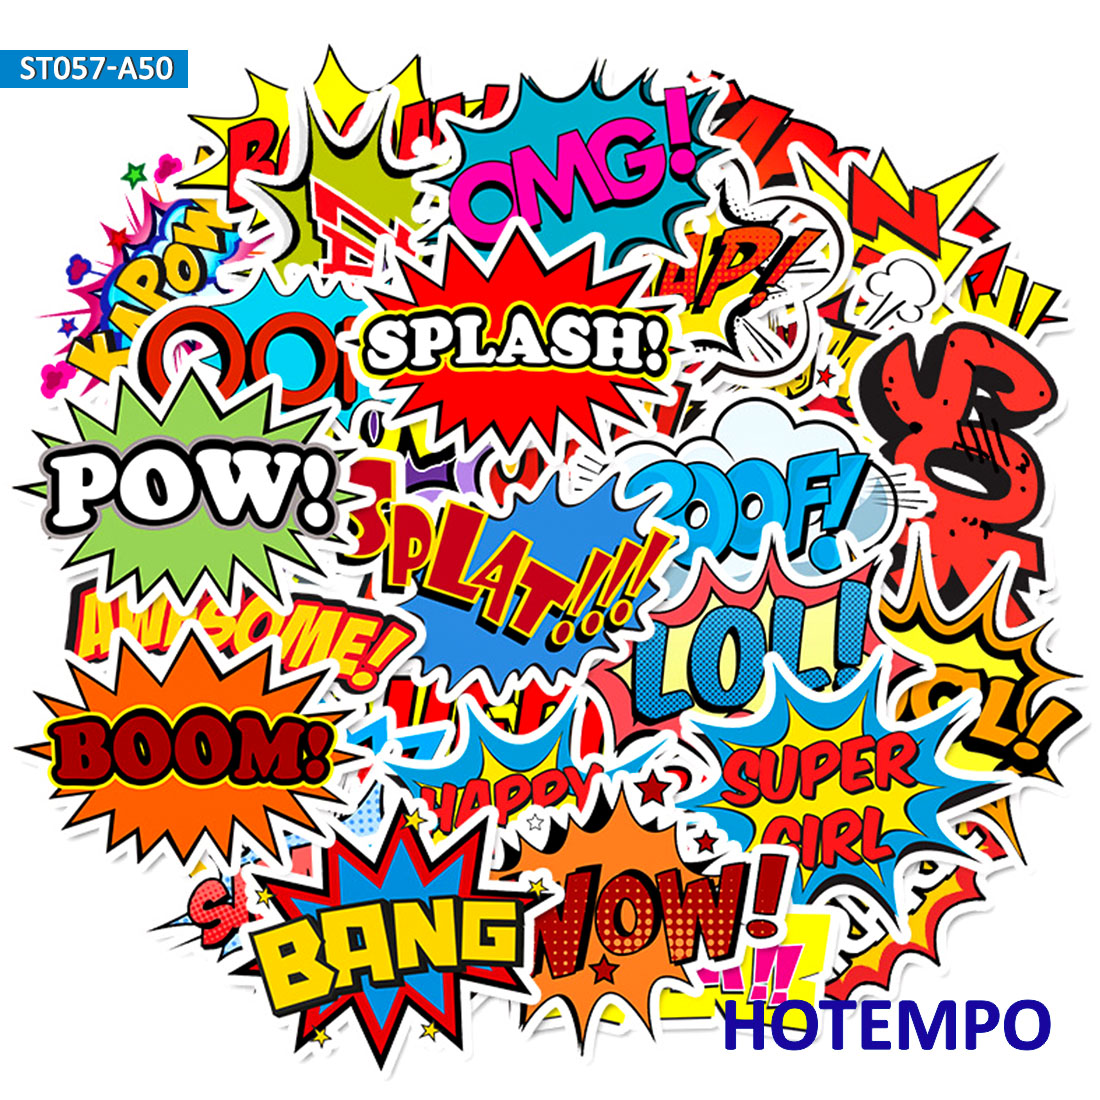 50pcs BAM POW WOW BOOM BANG OMG OOP Clouds From Explosion Stickers For Mobile Phone Laptop Luggage Case Skateboard Anime Sticker